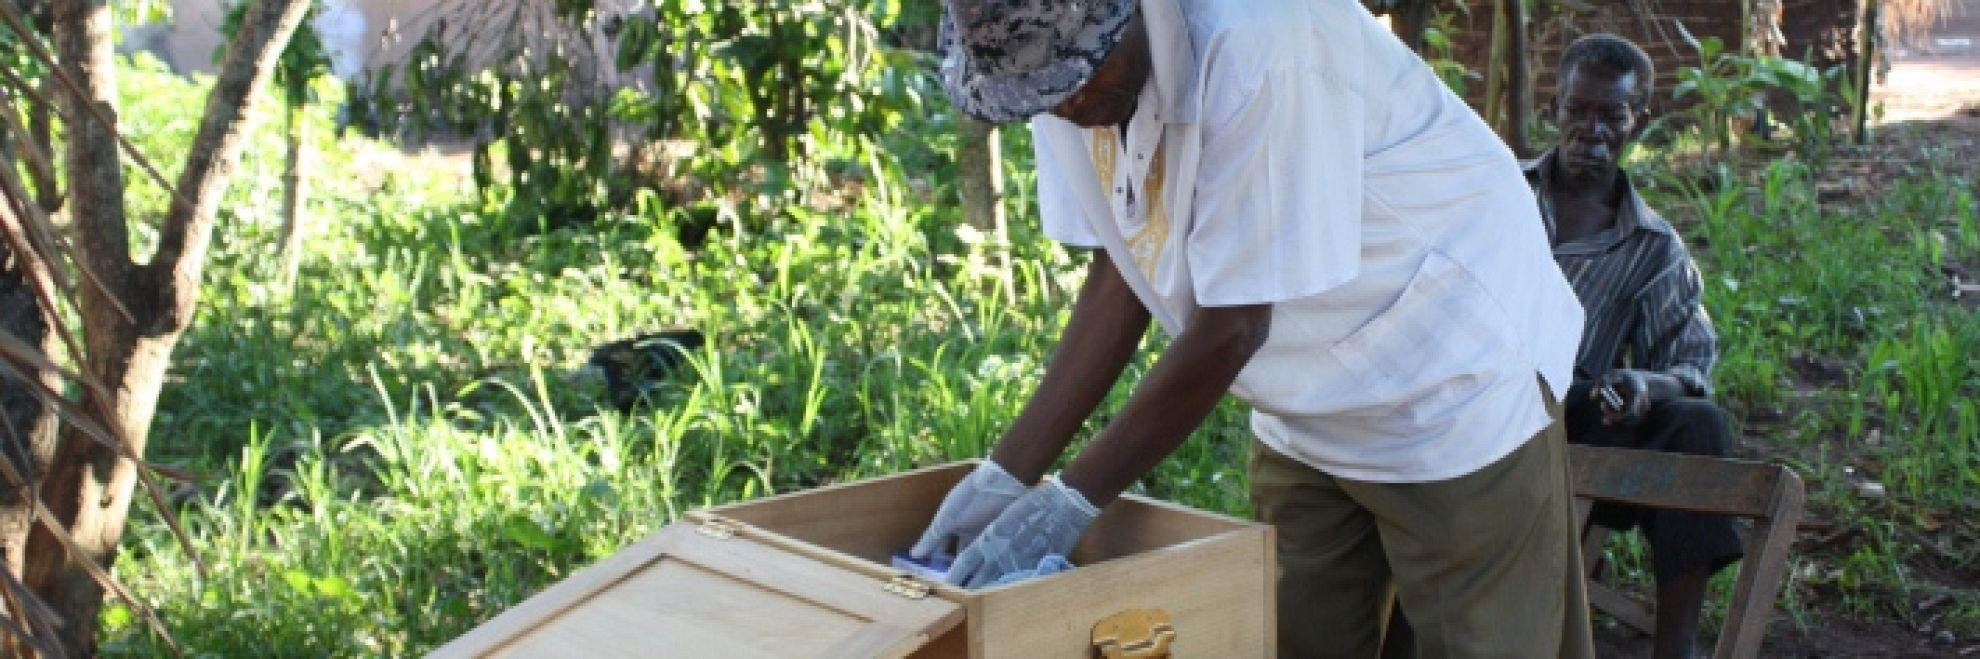 Latest News Malaria consortium signs onto global action plan